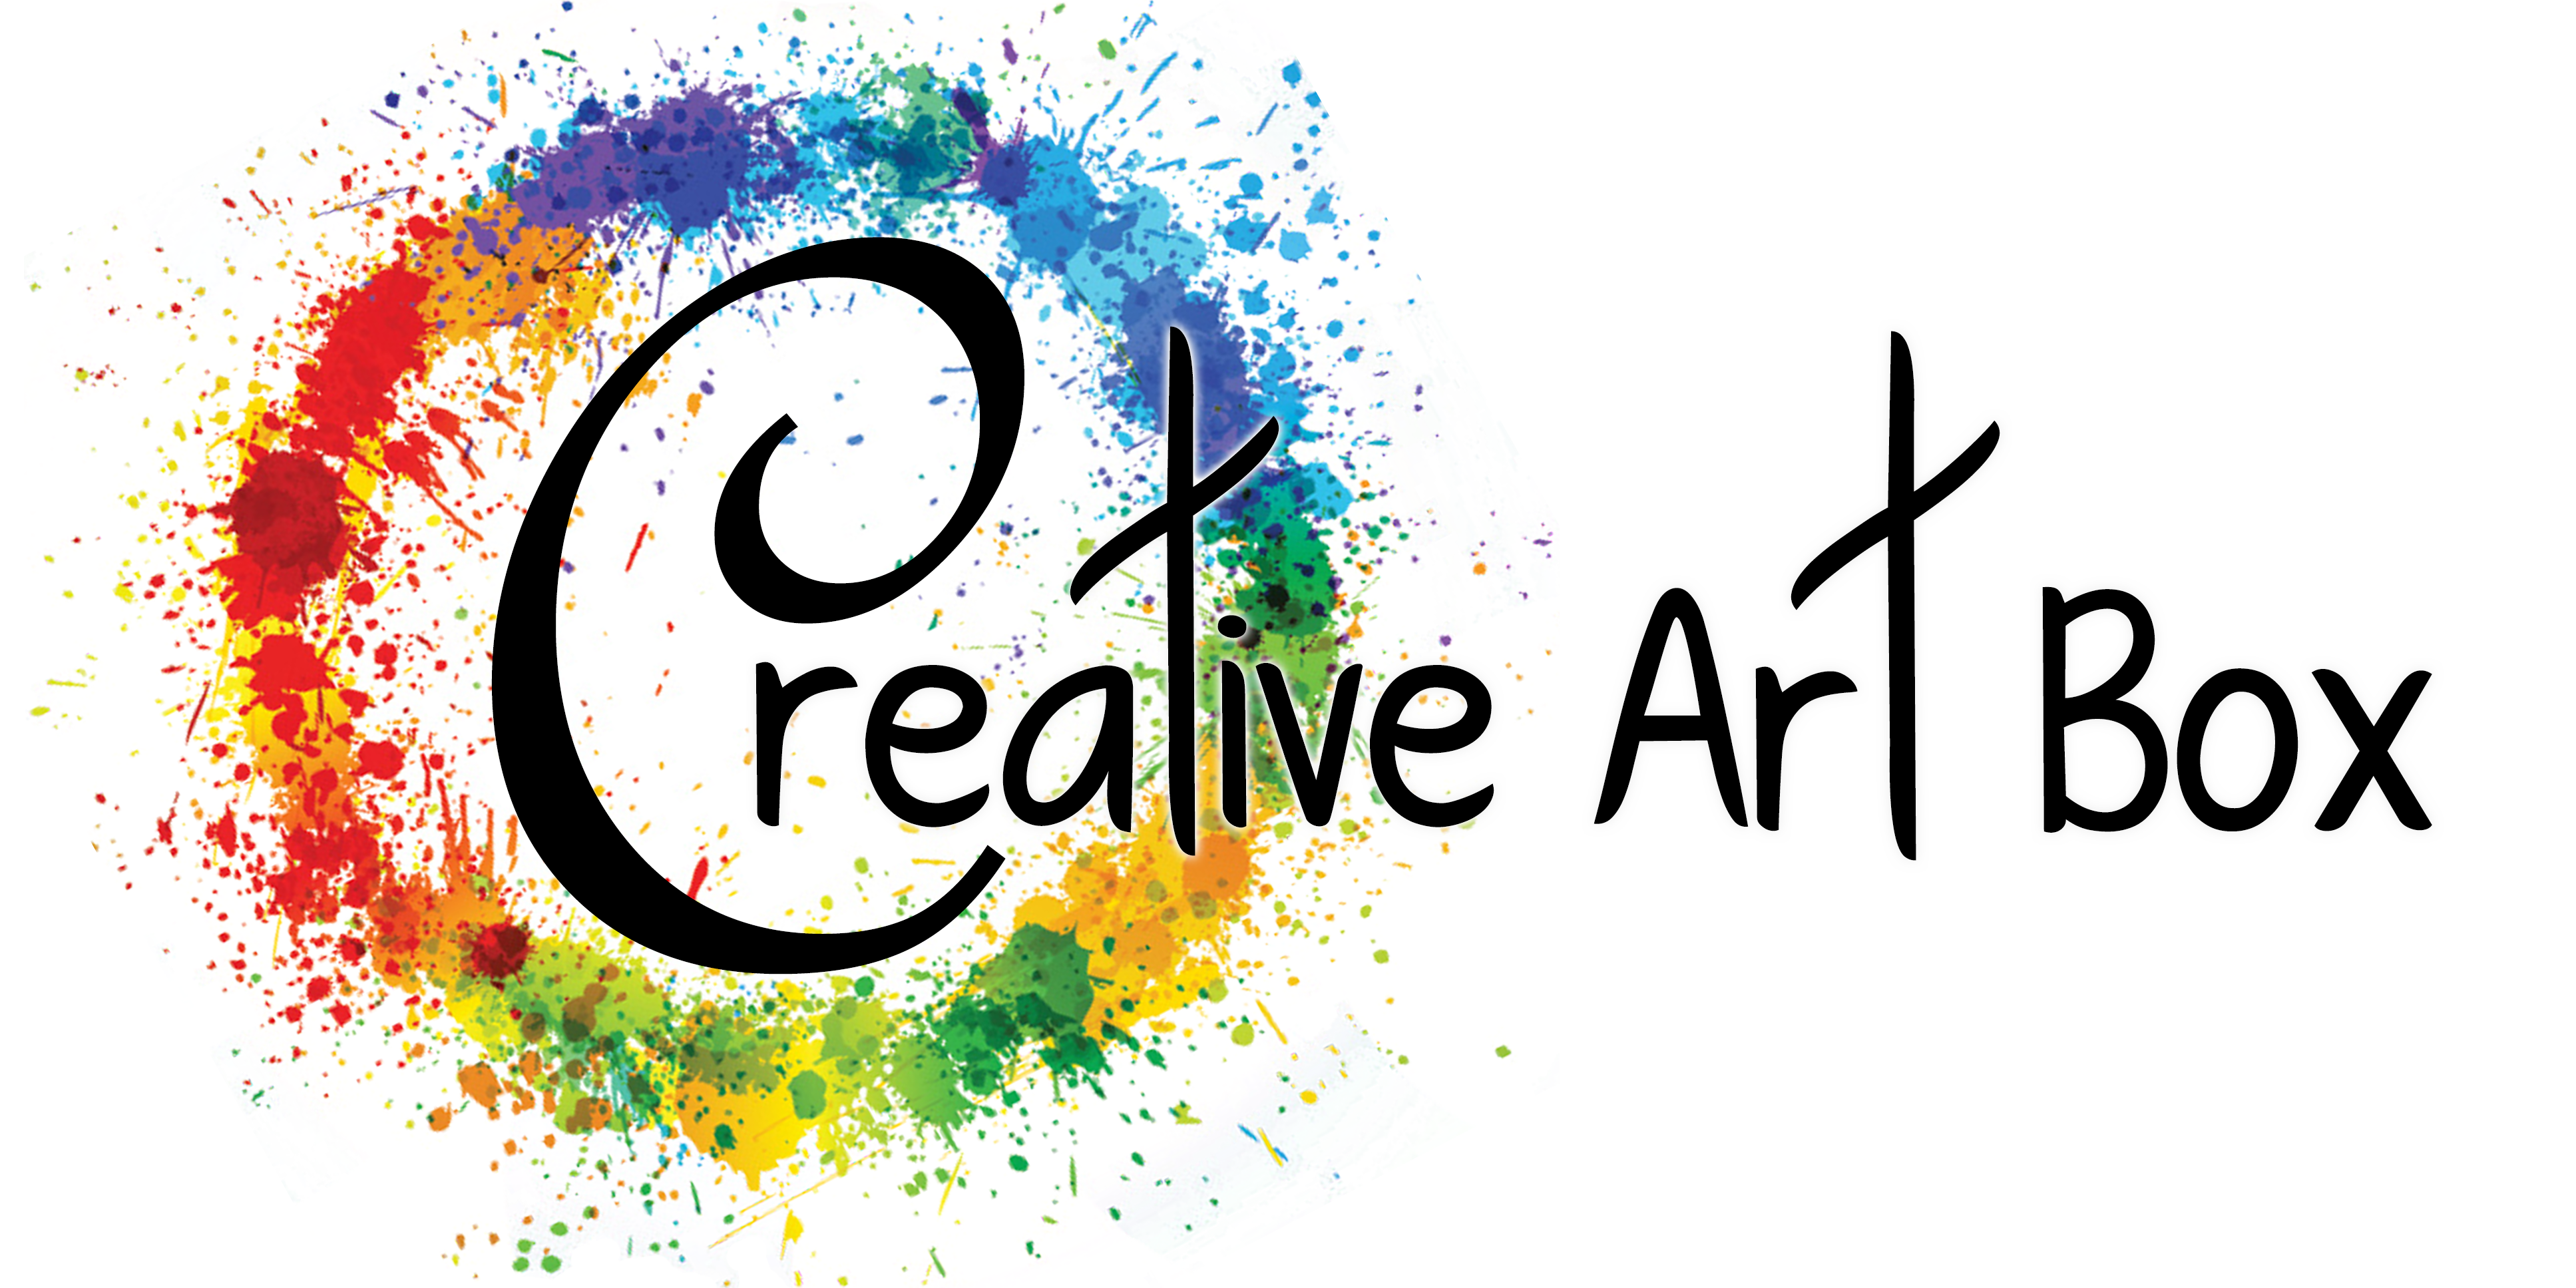 Creative Art Box: Monthly Art Supplies Delivered to Your Door!